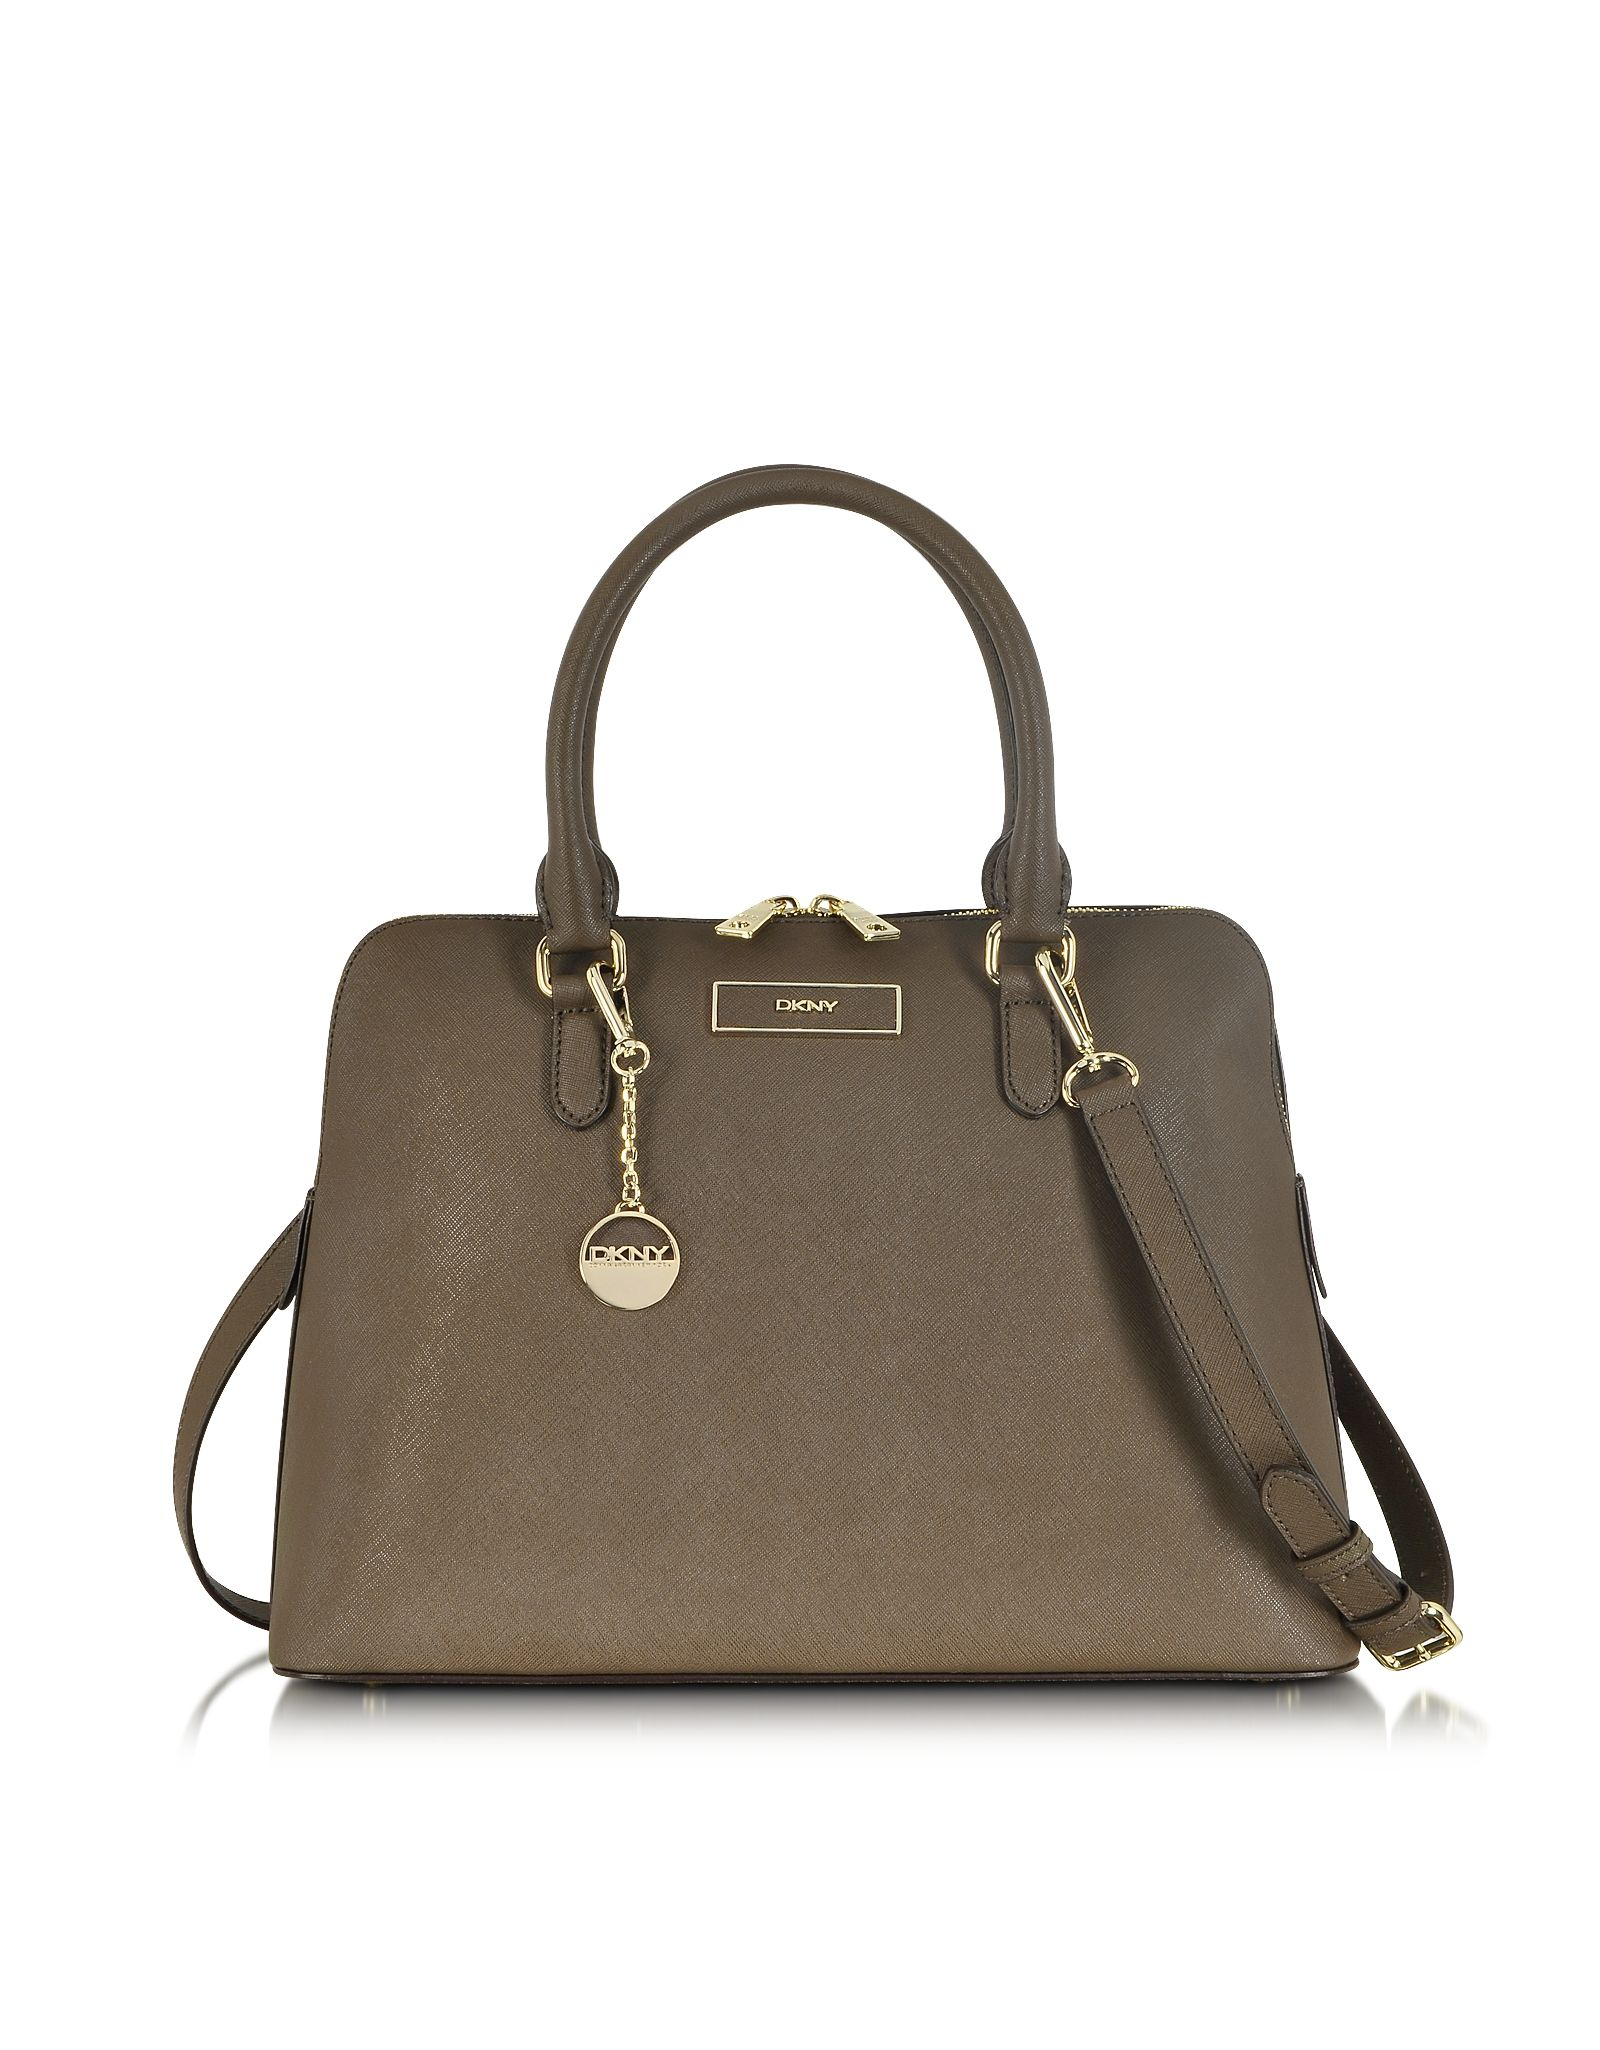 DKNY Khaki Saffiano Leather Bowler Bag at FORZIERI .....My personal and favorite